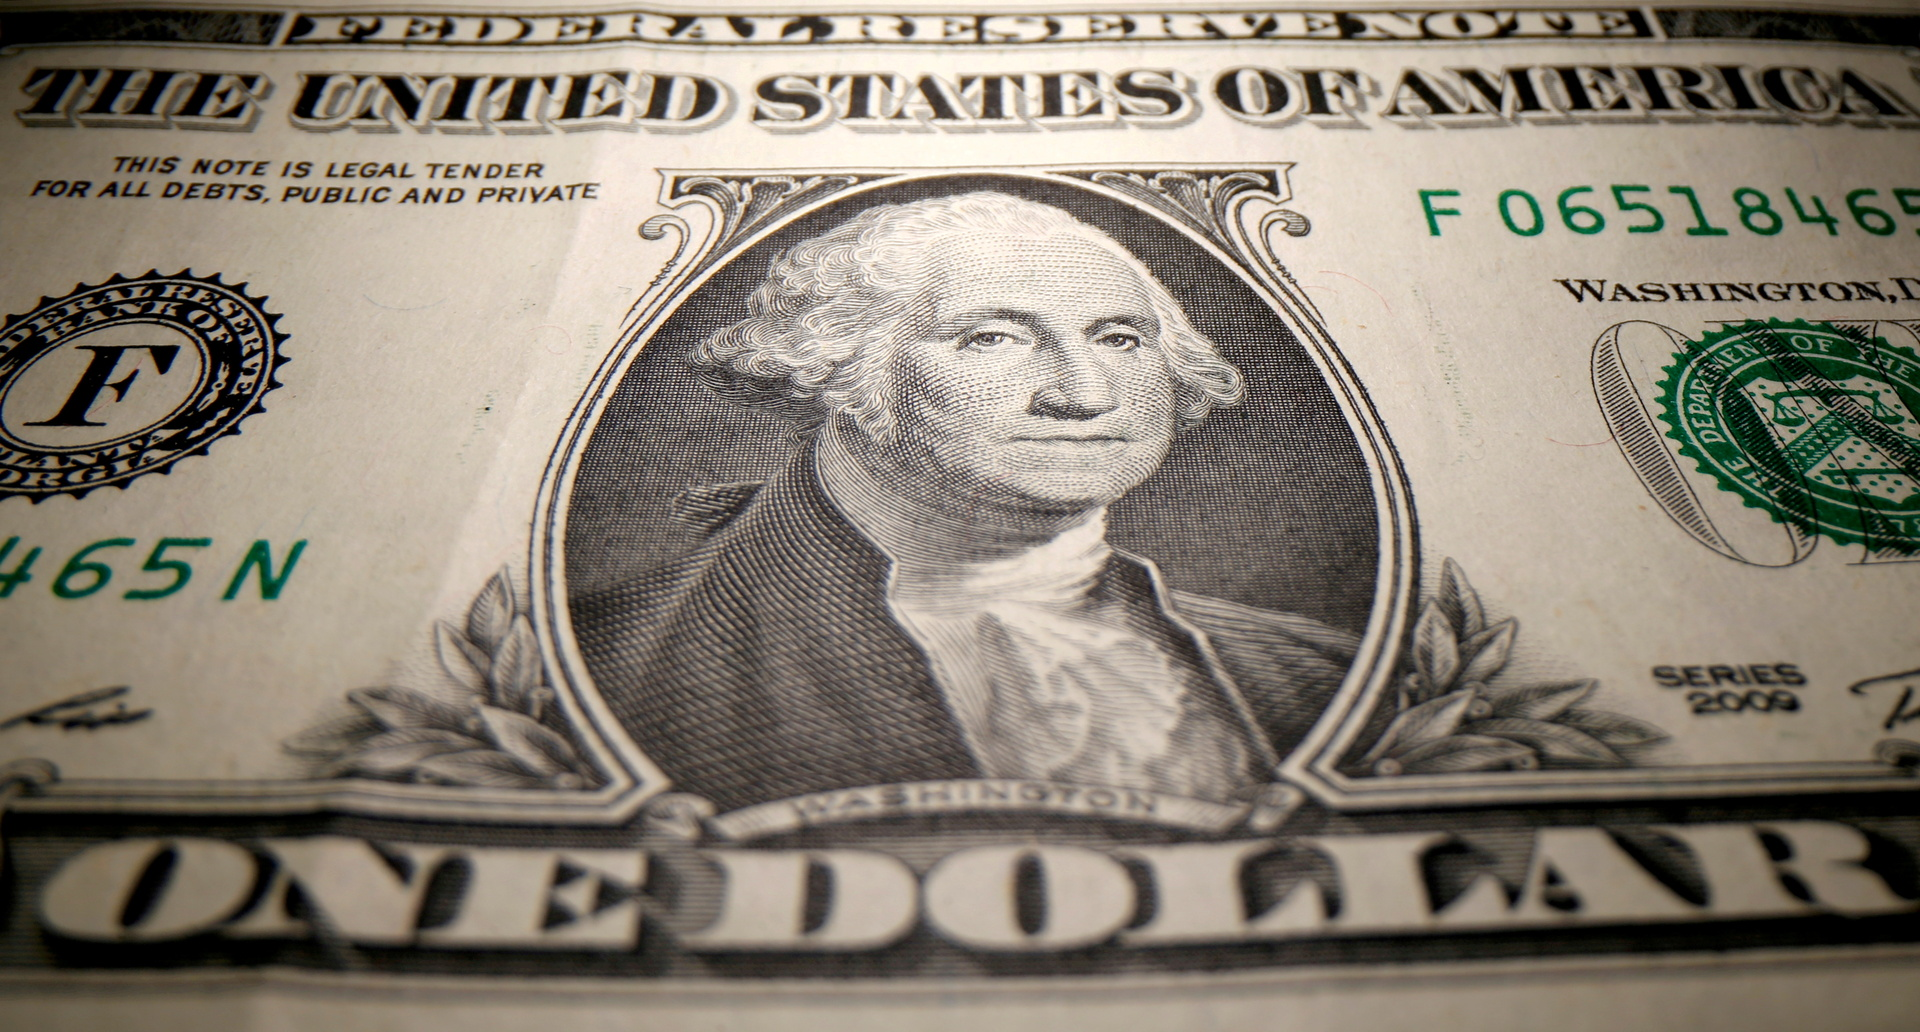 The largest distribution in history.. Countries start receiving billions of dollars from the International Monetary Fund